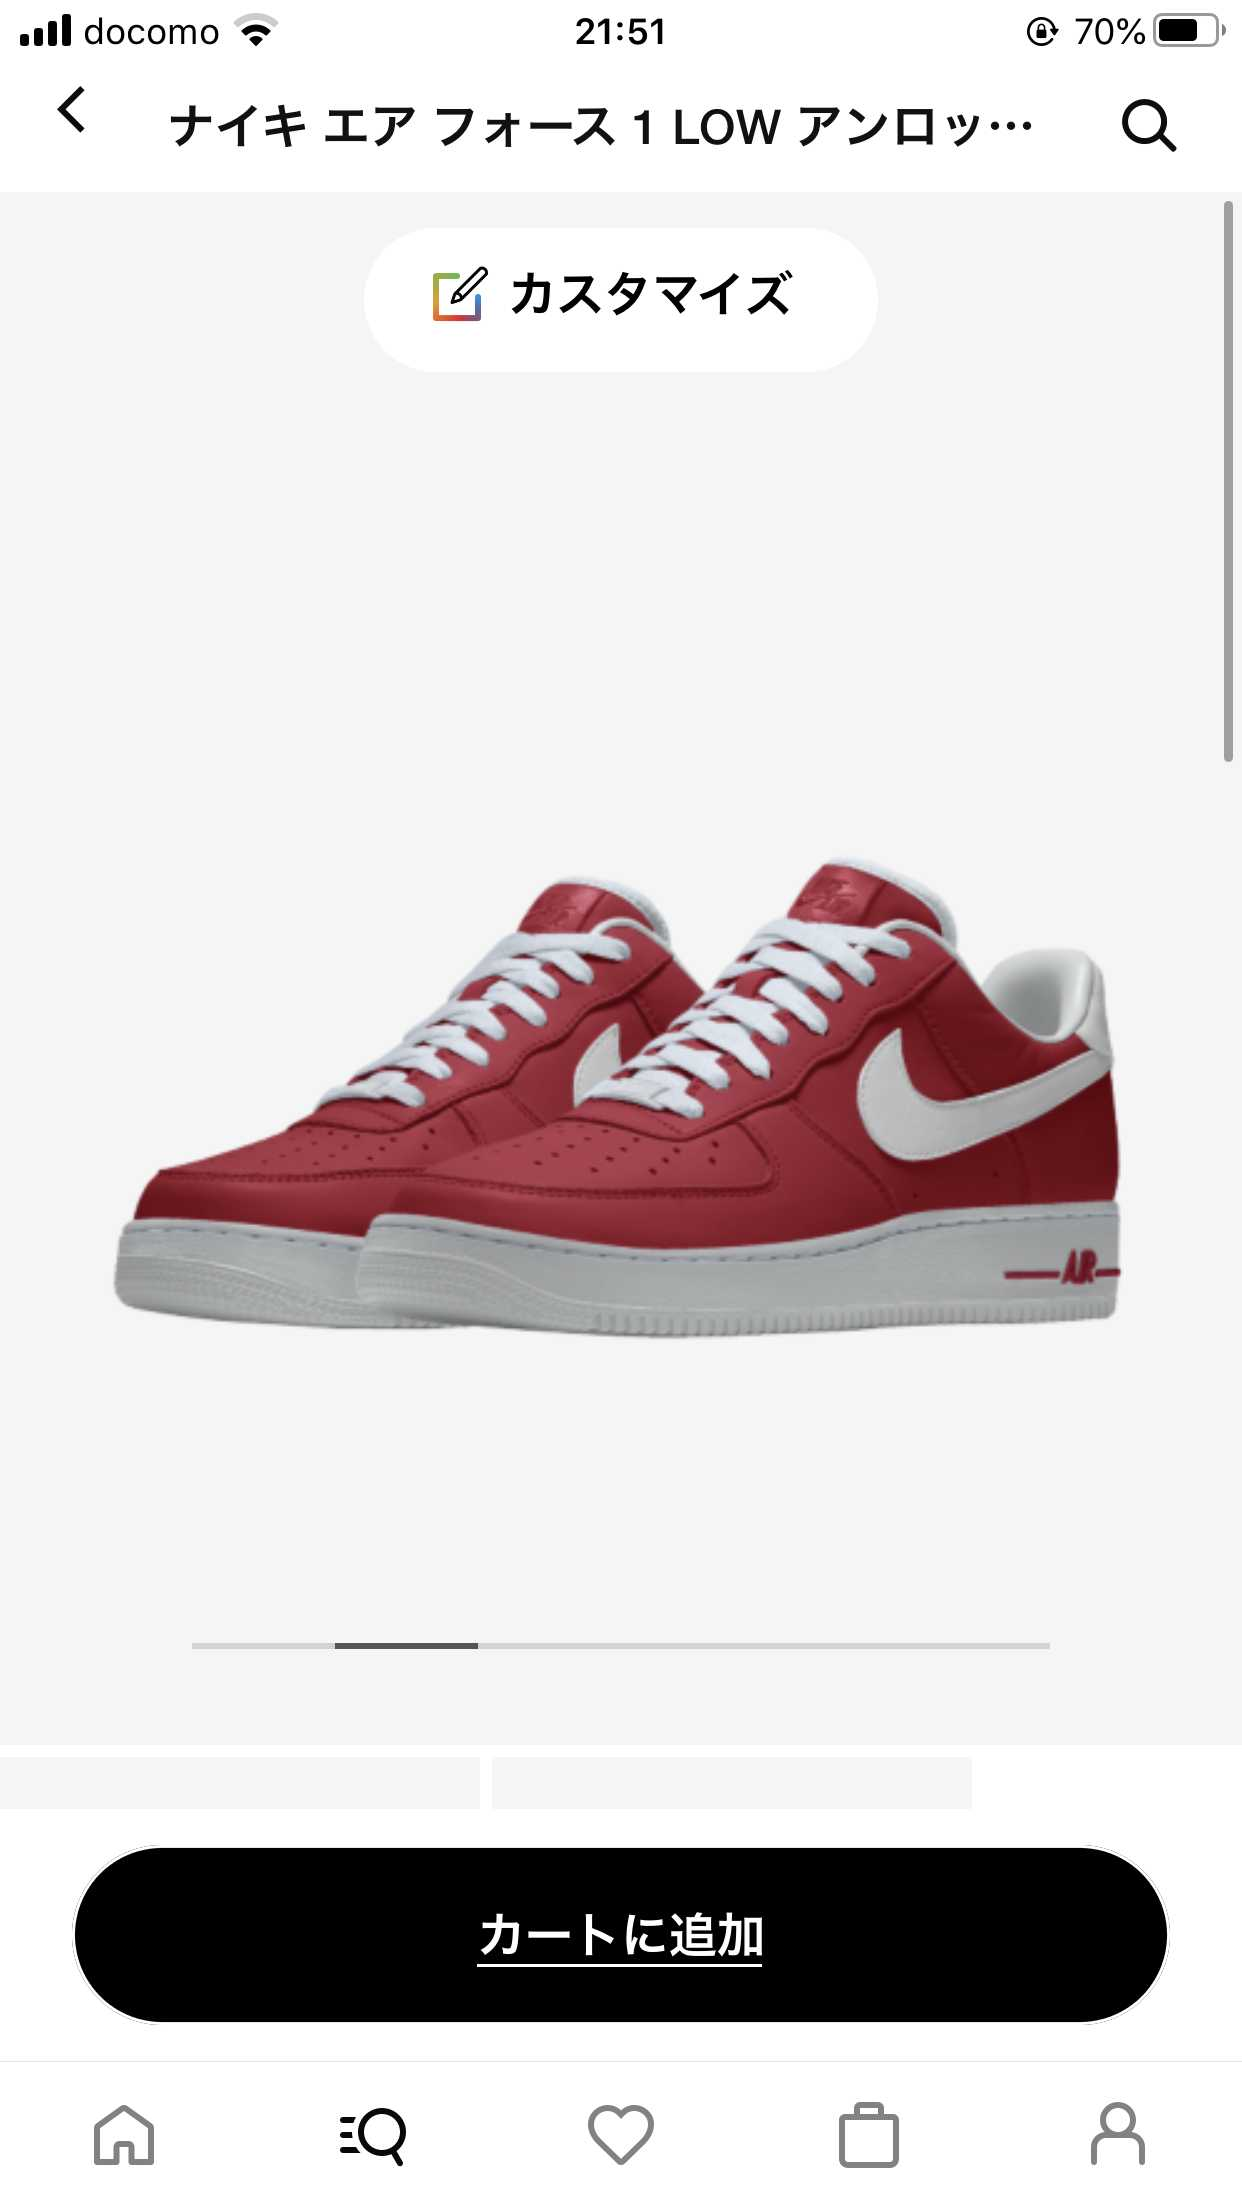 Nike Air force1 low By you